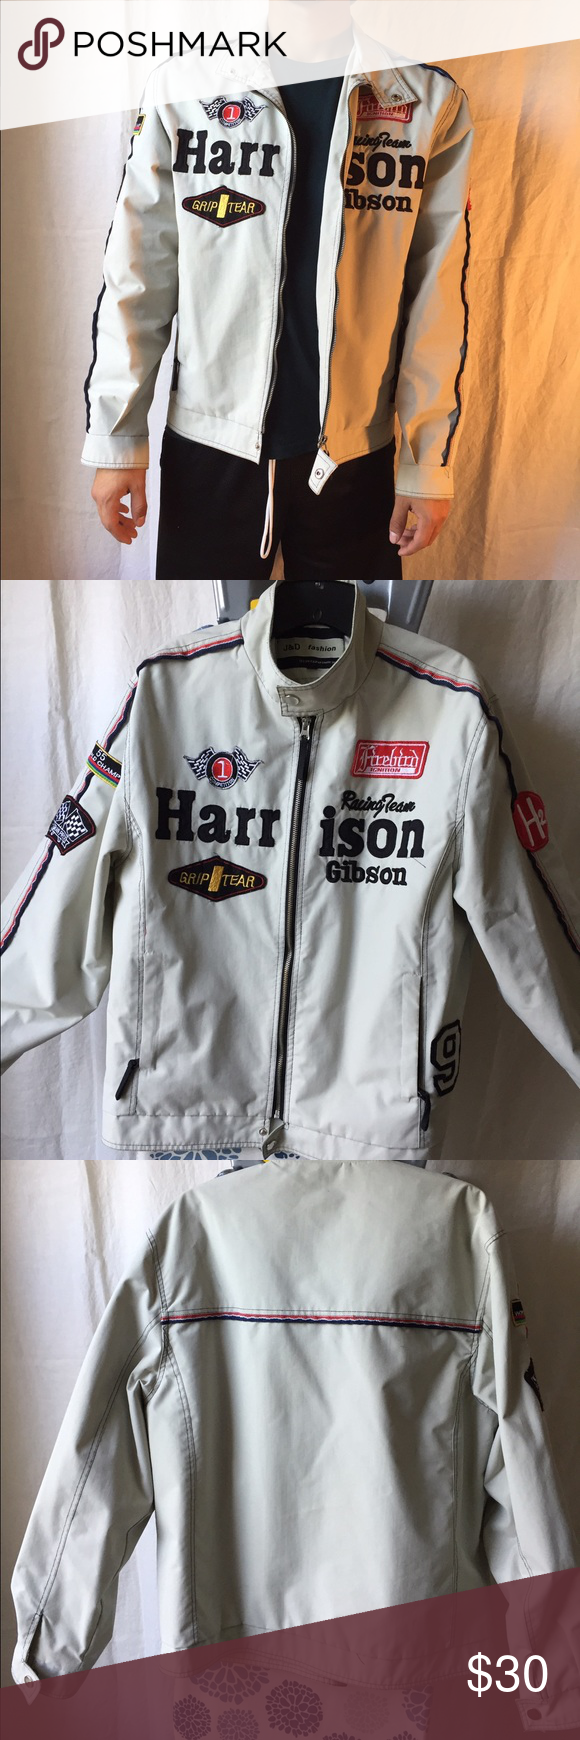 ee2262abb Vintage Harrison Gibson Racing Team Jacket Zip up jacket, button at ...